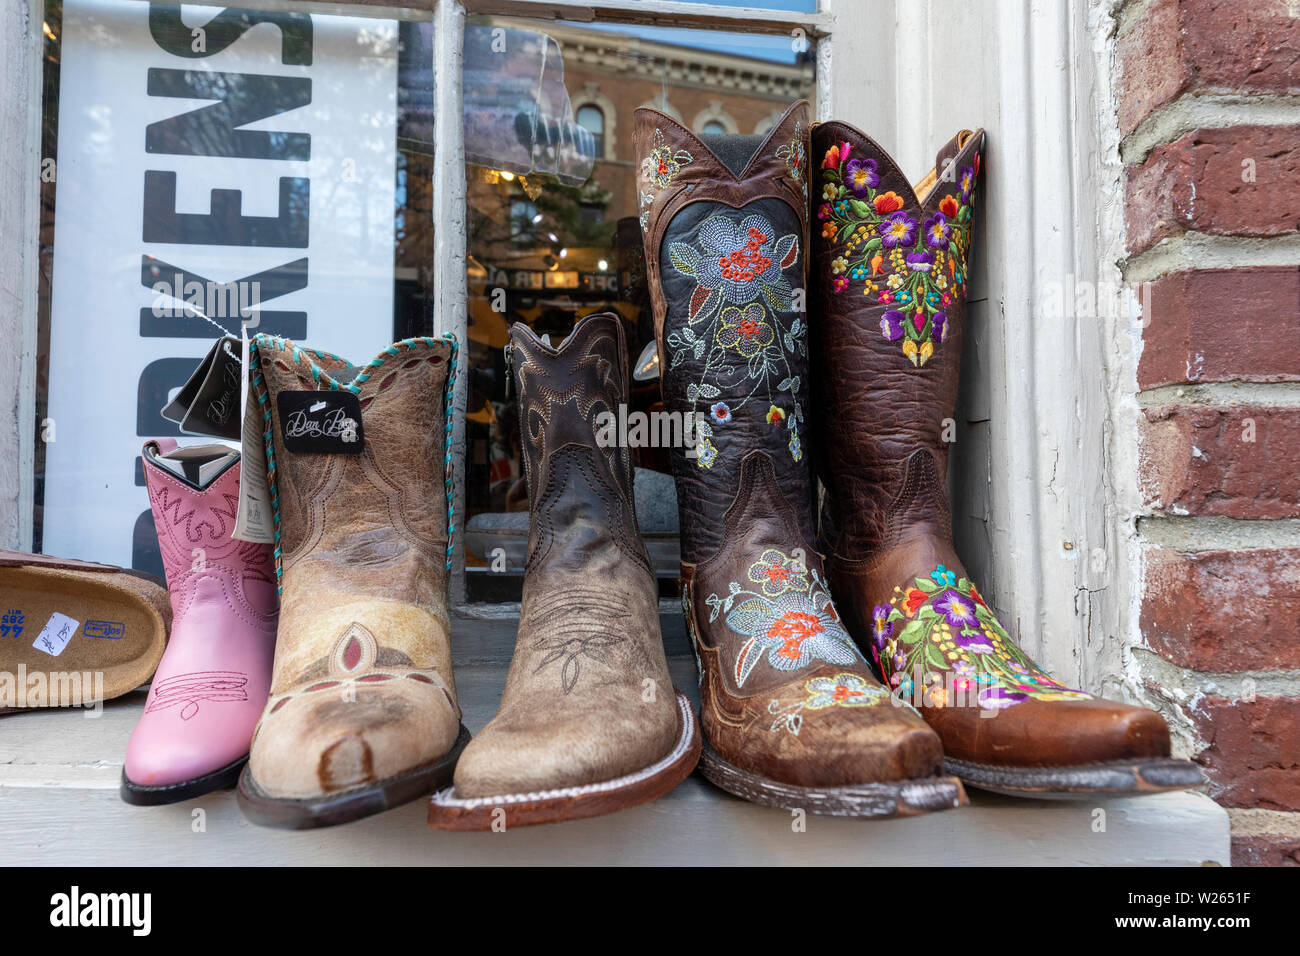 Decorated Boots Stockfotos & Decorated Boots Bilder Alamy